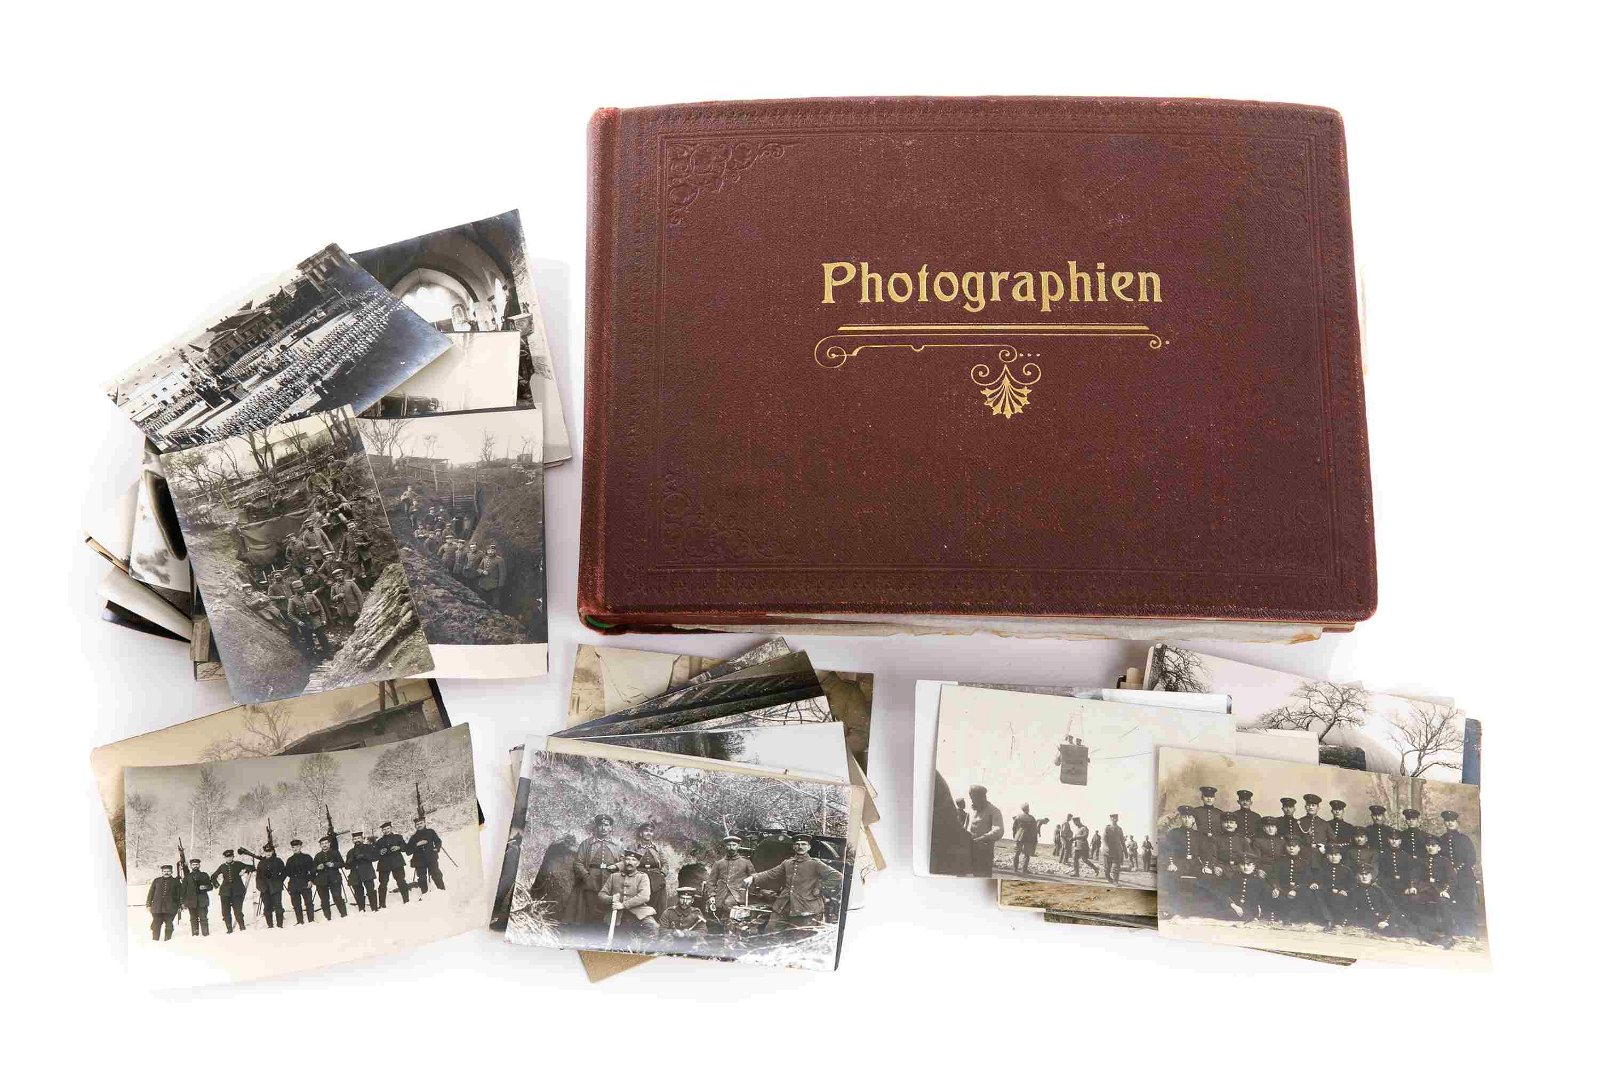 JUNE 30TH ANTIQUE BOOKS, PHOTOGRAPHY, MAPS, POSTERS & MILITARIA AUCTION preview